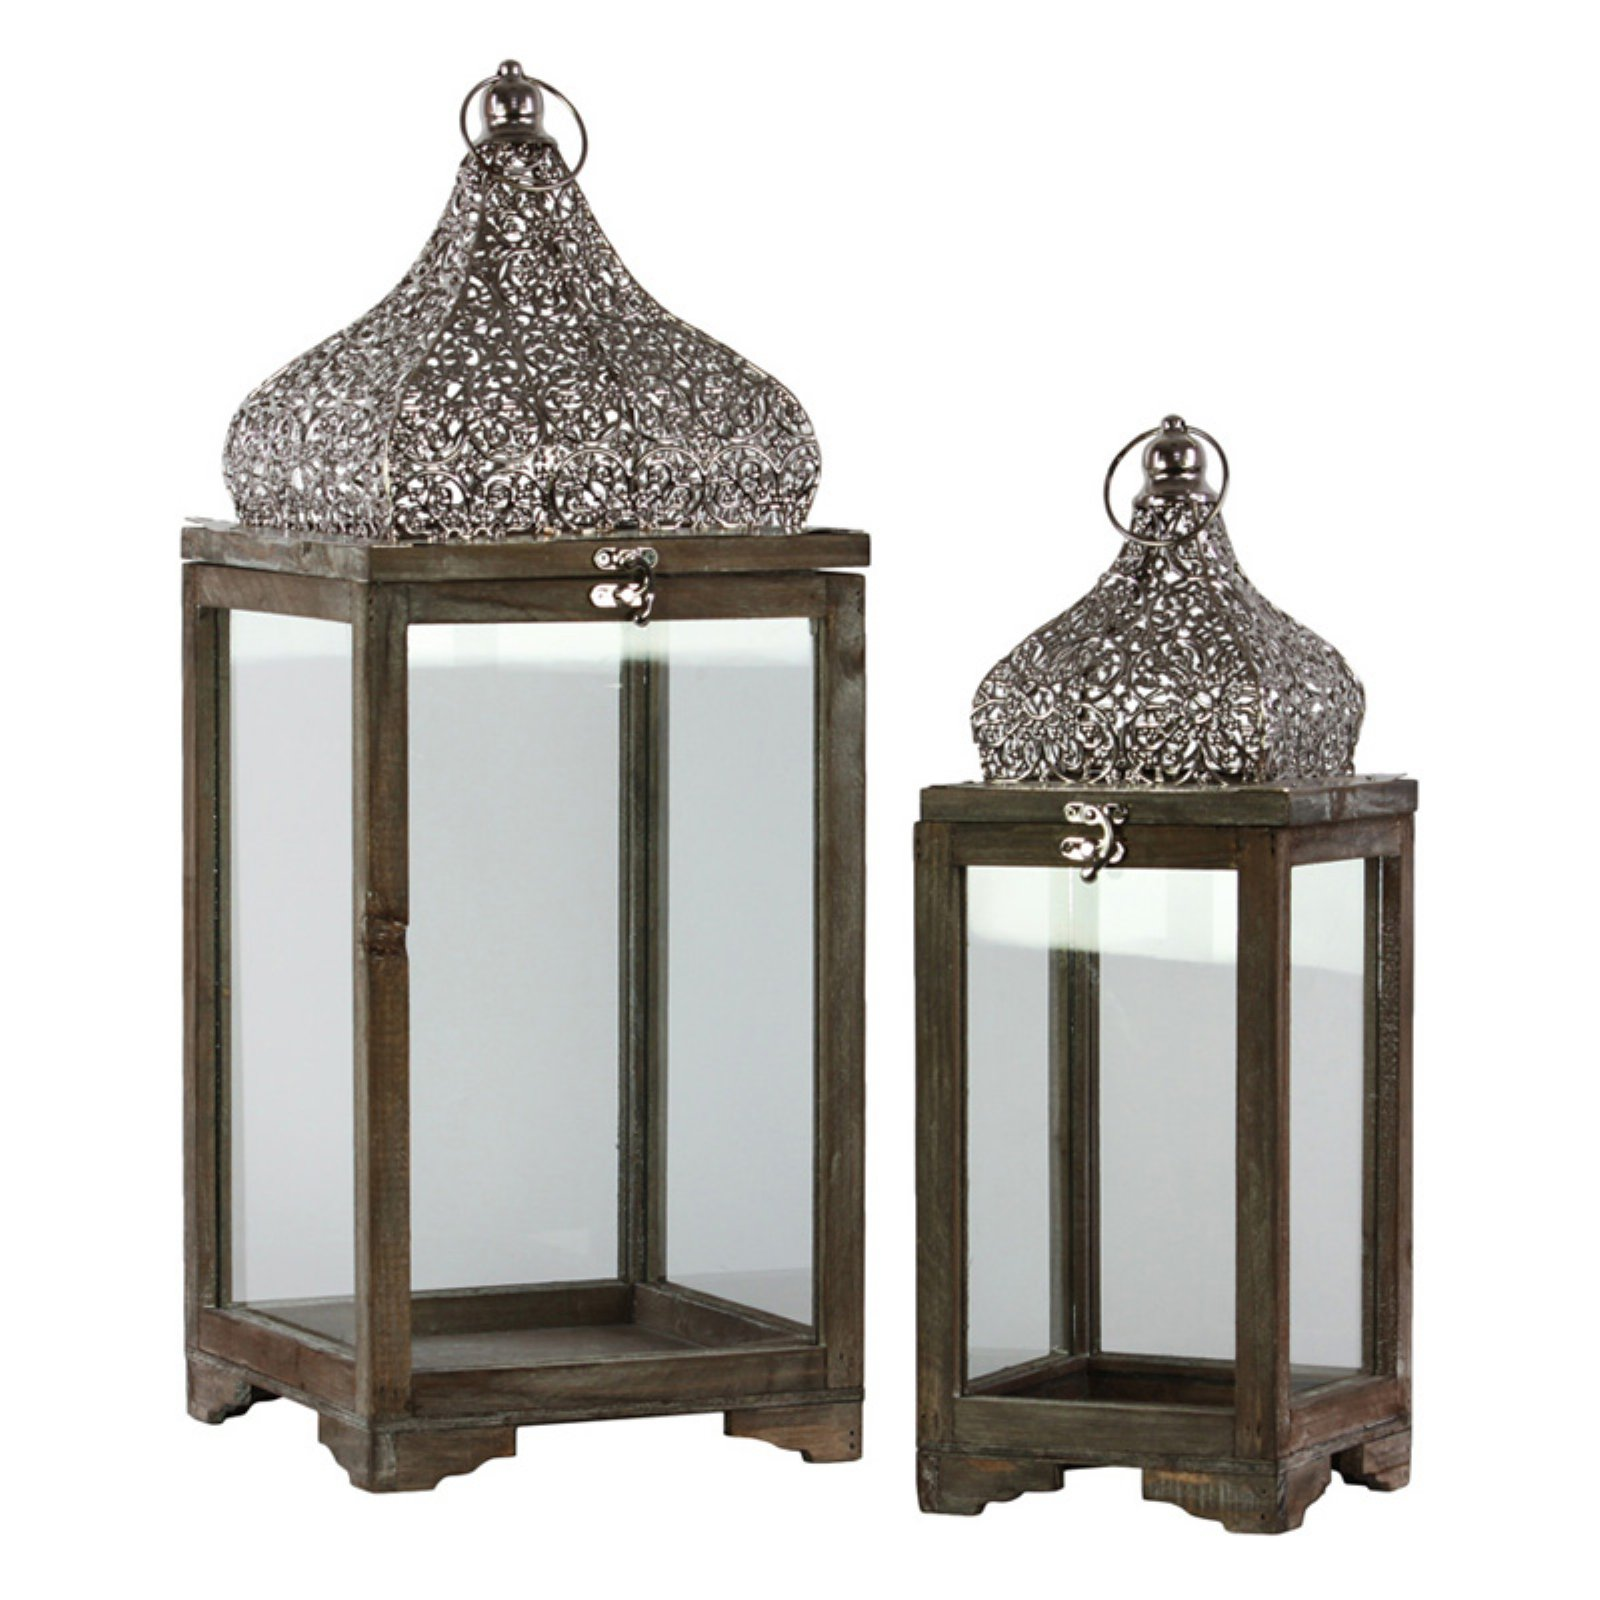 Urban Trends Collection: Wood Lantern, Natural Wood Finish, Brown